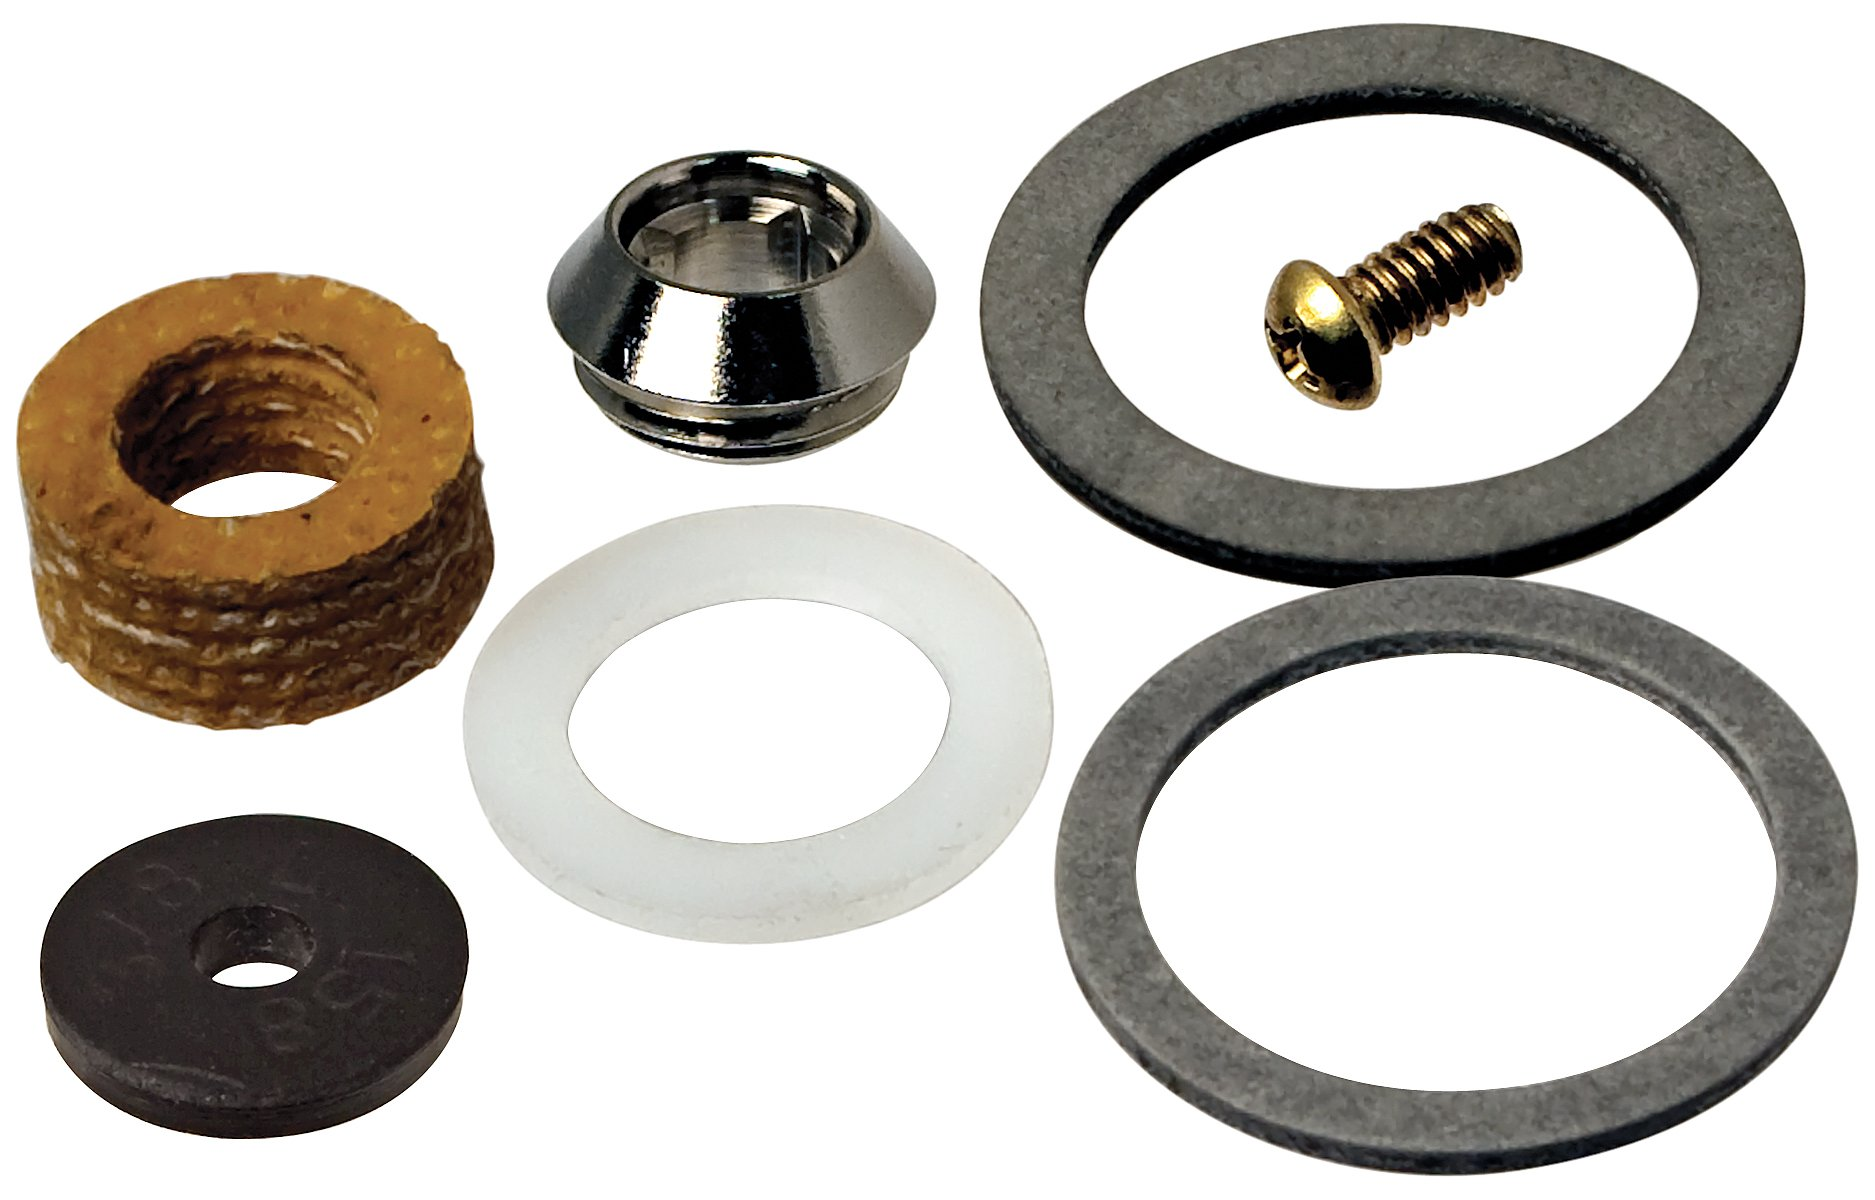 Price Pfister 131154 Washer Kit